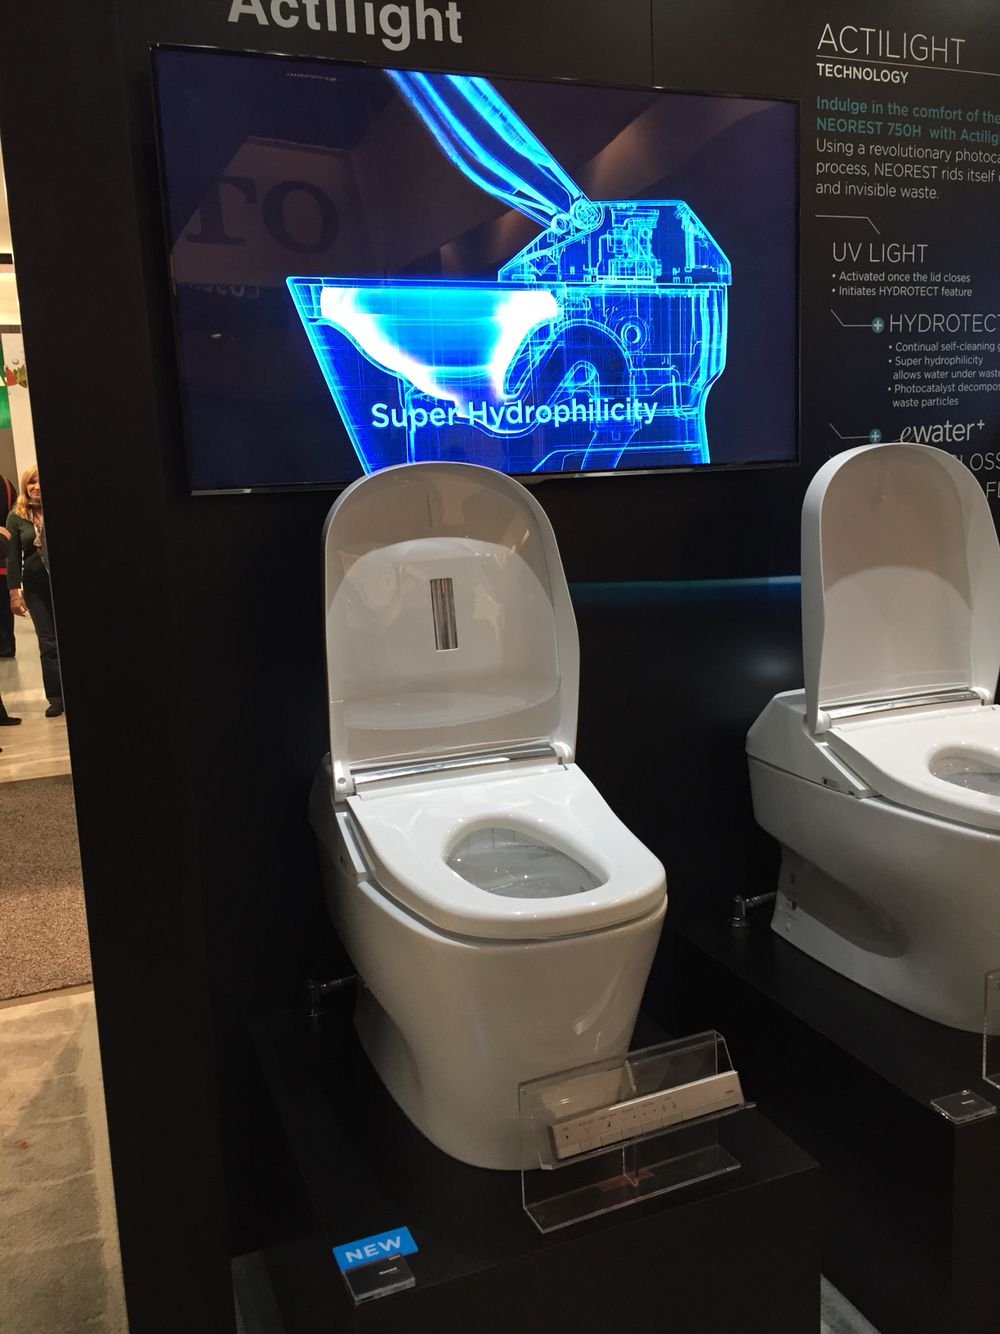 New self-cleaning toilet from Toto, $9,800. Yes, $9,800 ...